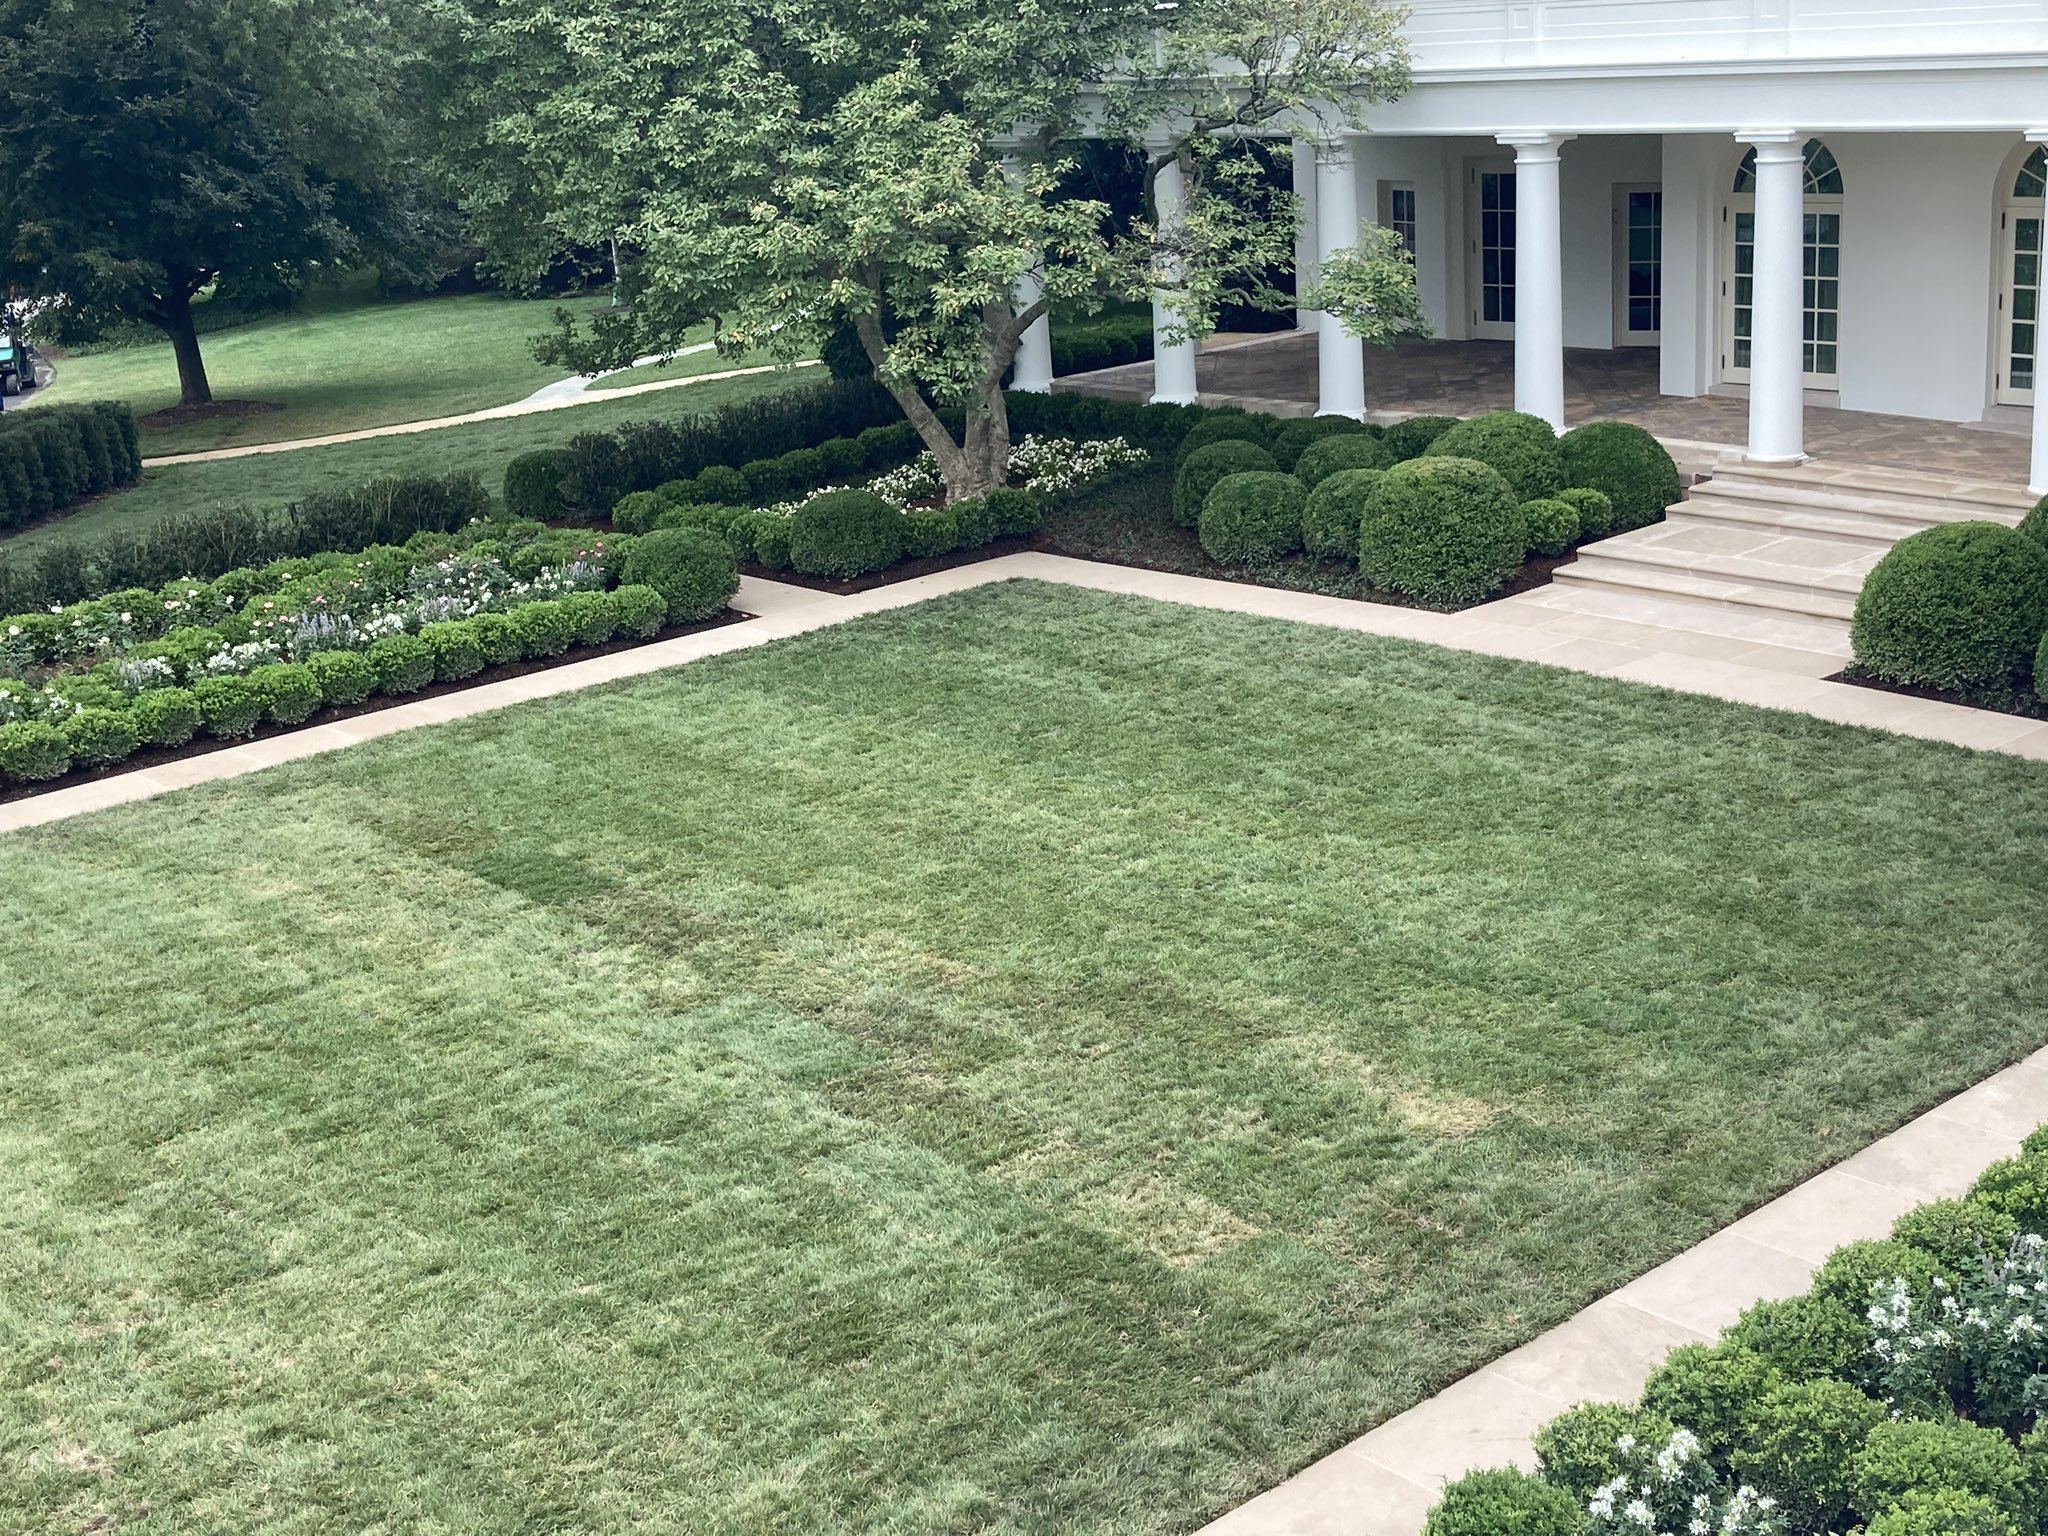 Petition calls for Jill Biden to undo Trump-era changes to White House Rose Garden